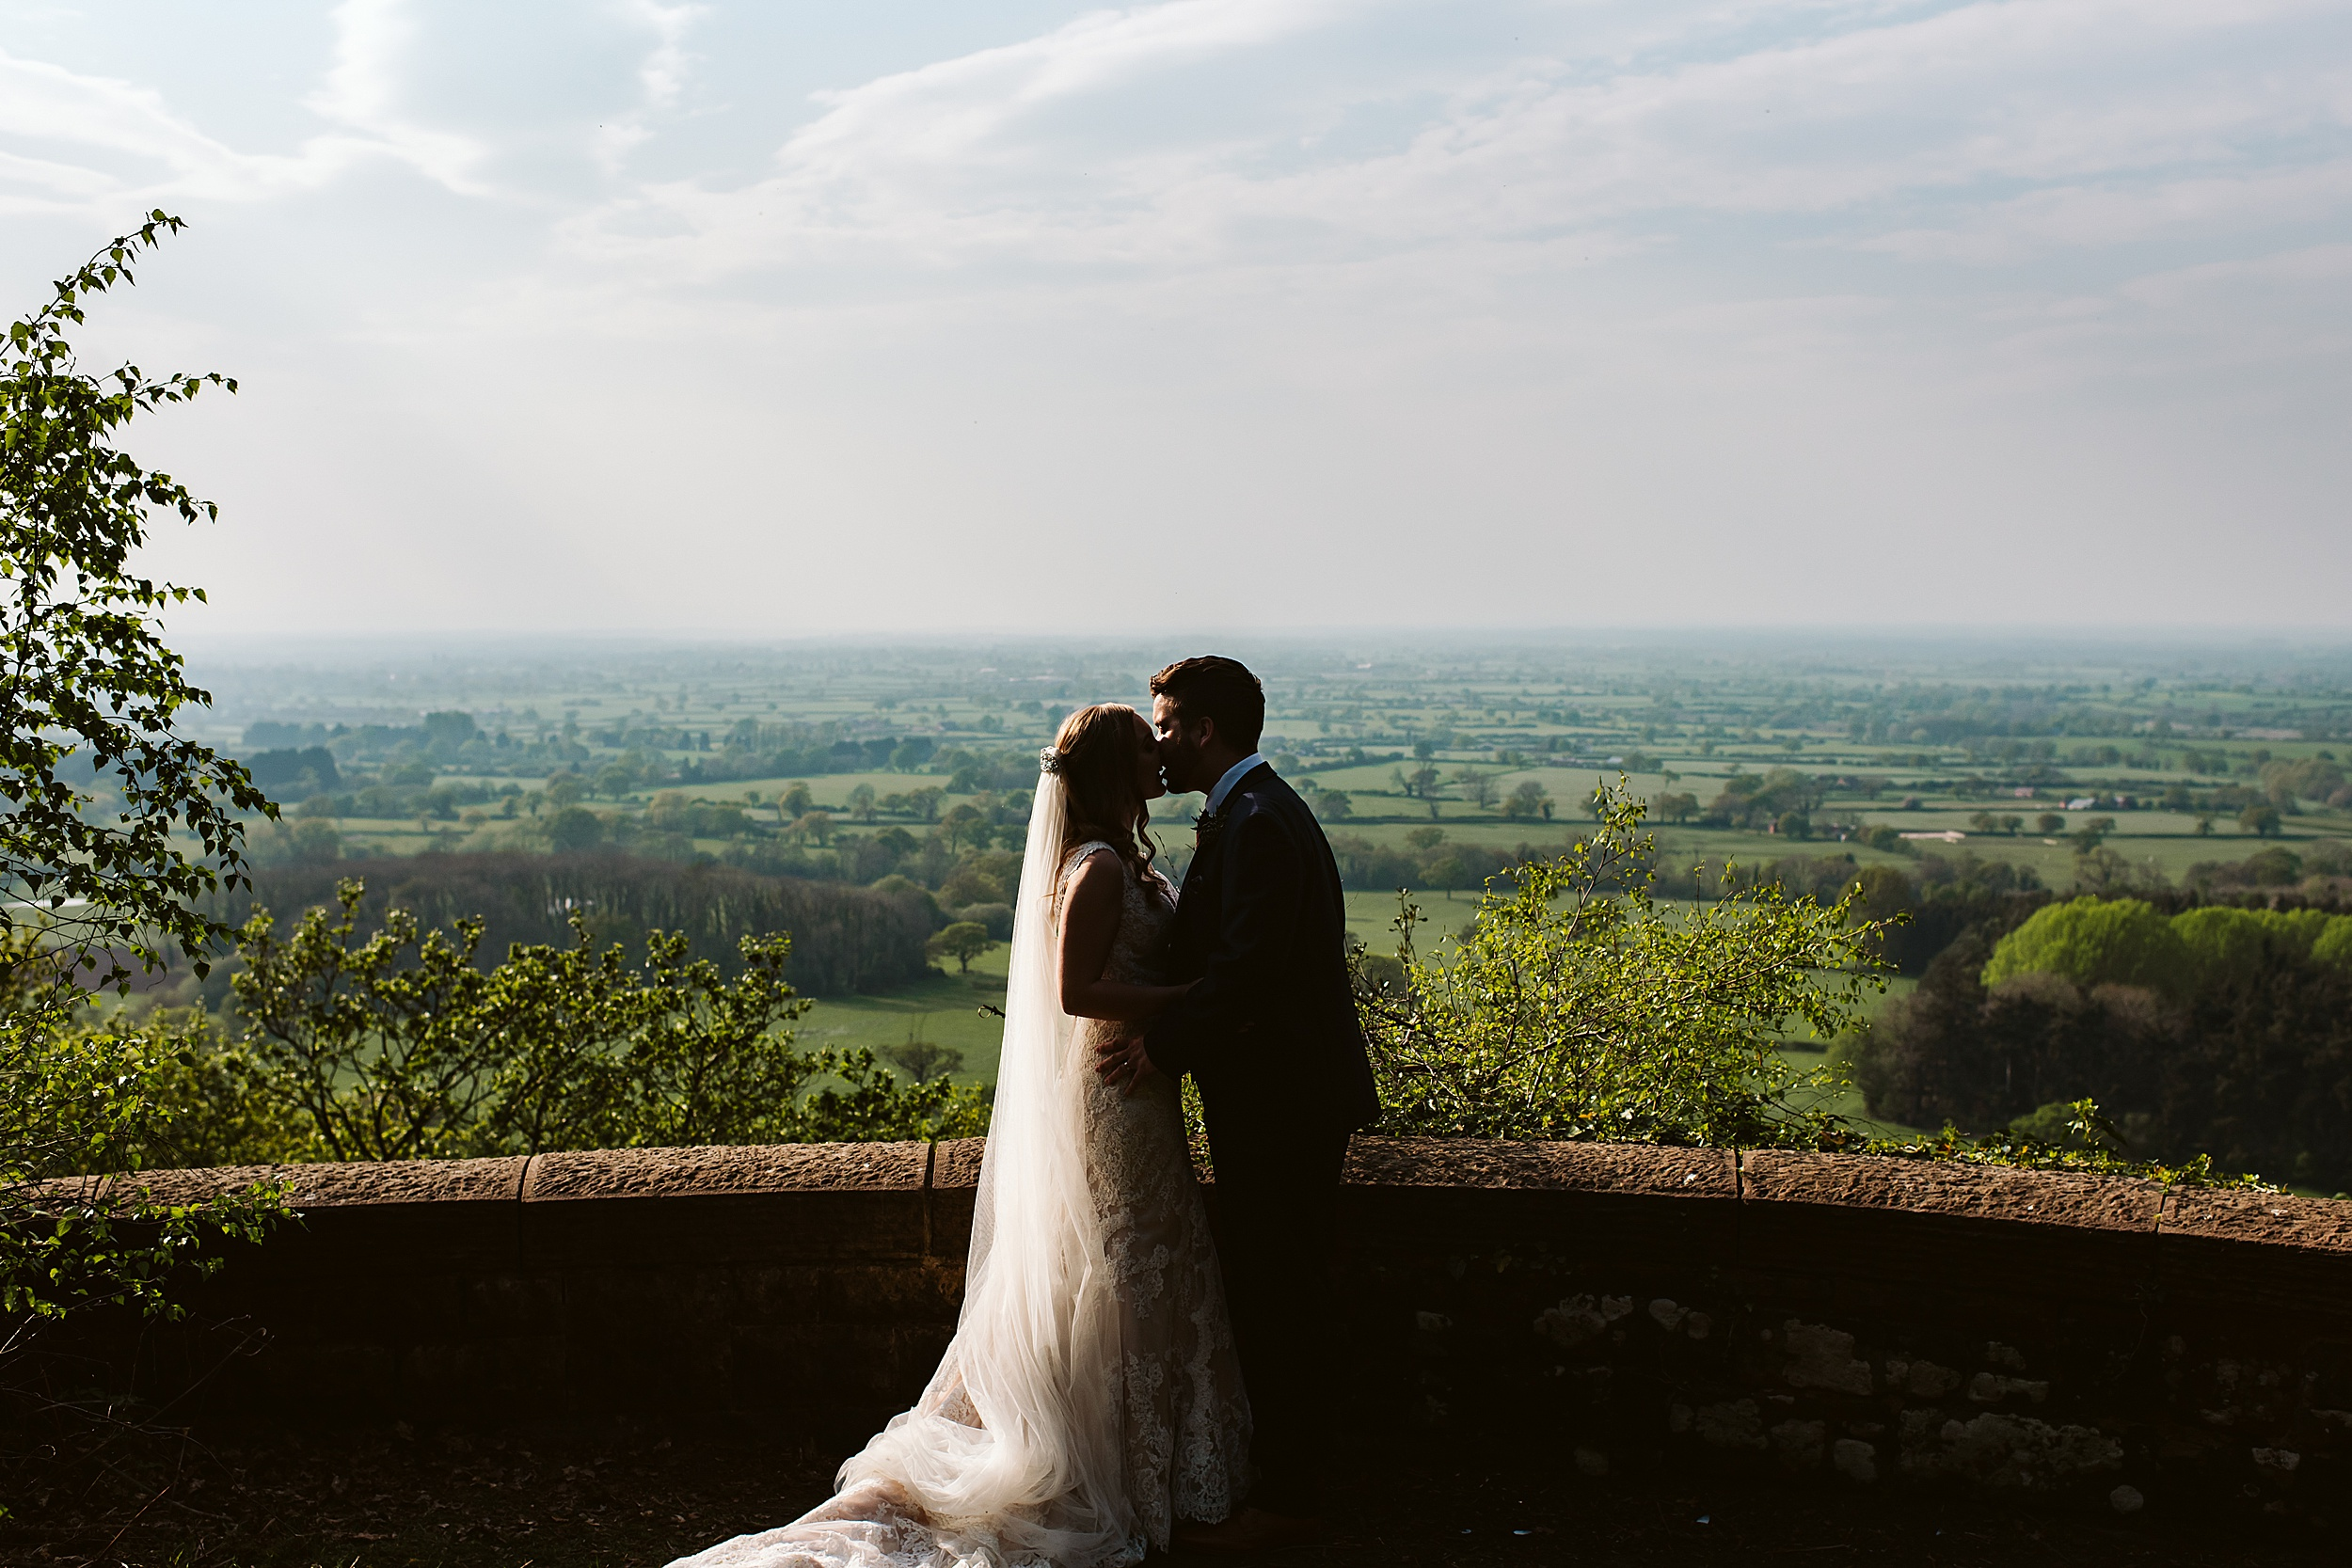 Peckforton_Castle_Cheshire_Toronto_Wedding_Photographer_UK_Destination_Wedding_0091.jpg